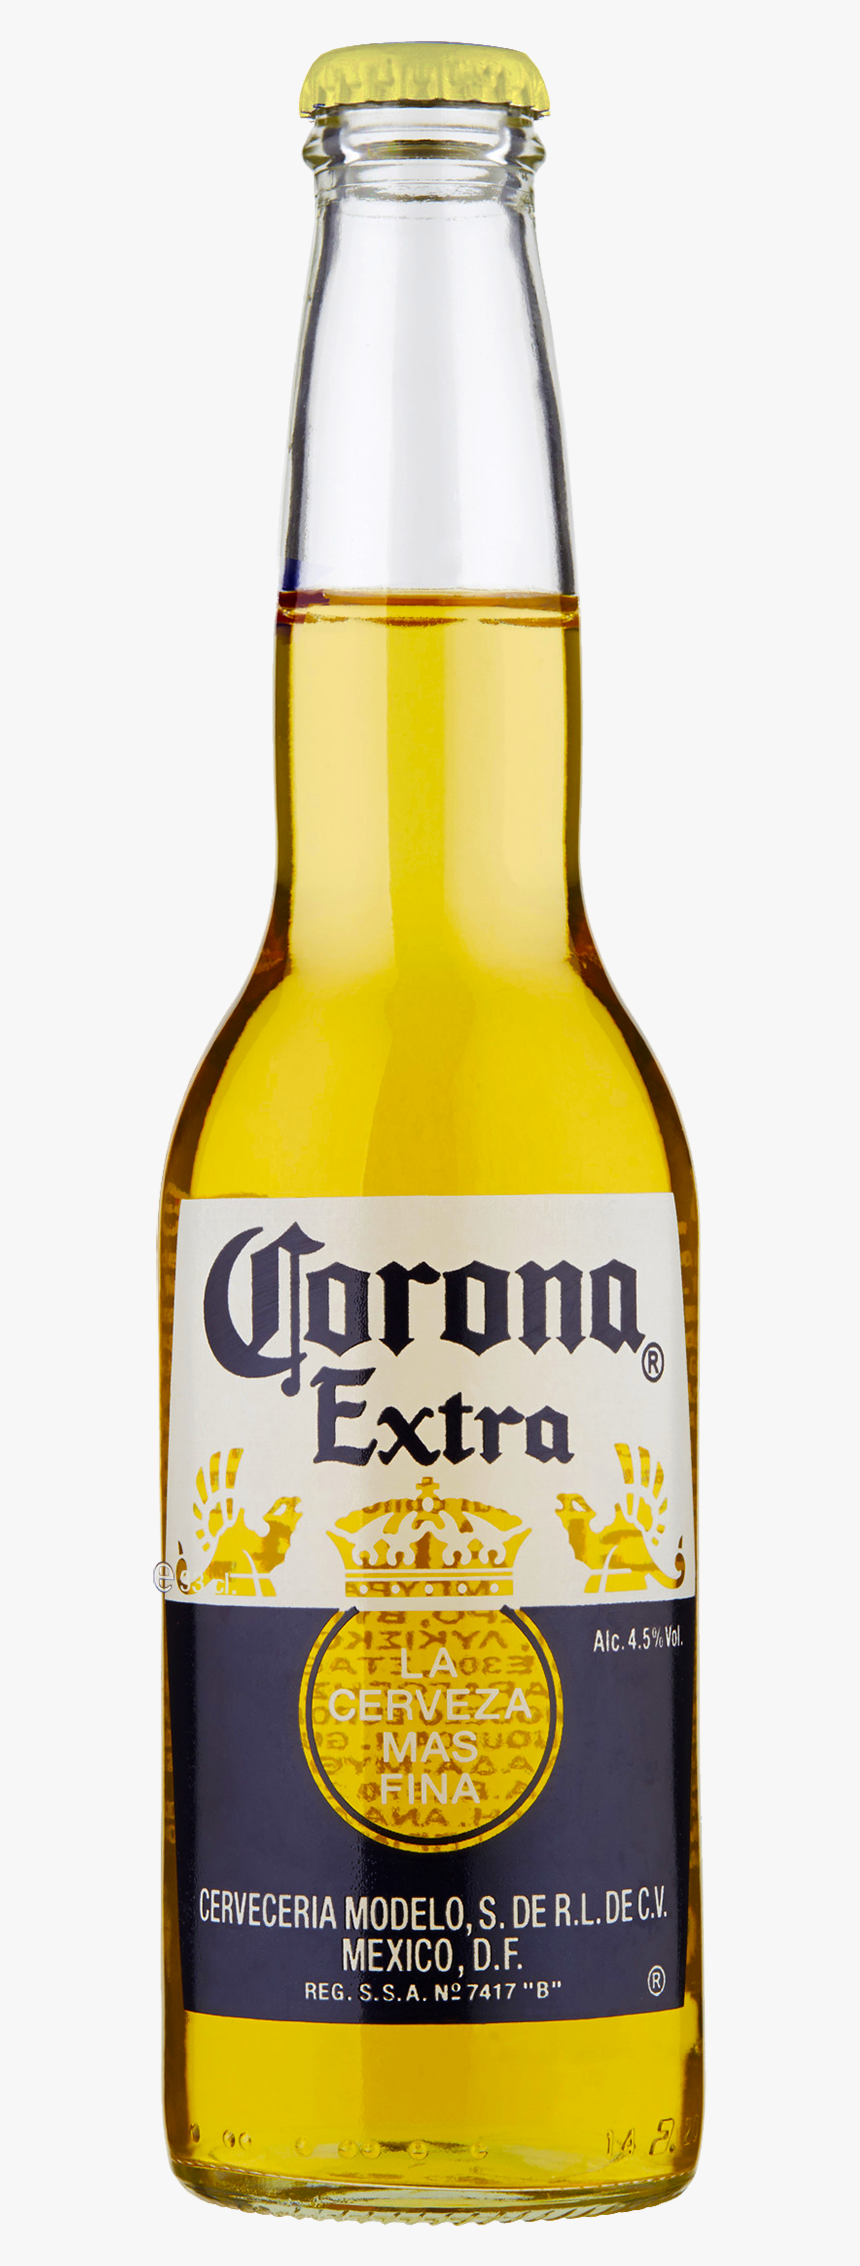 Corona Extra Beer Bottle - Corona Extra 35.5 Cl, HD Png Download, Free Download